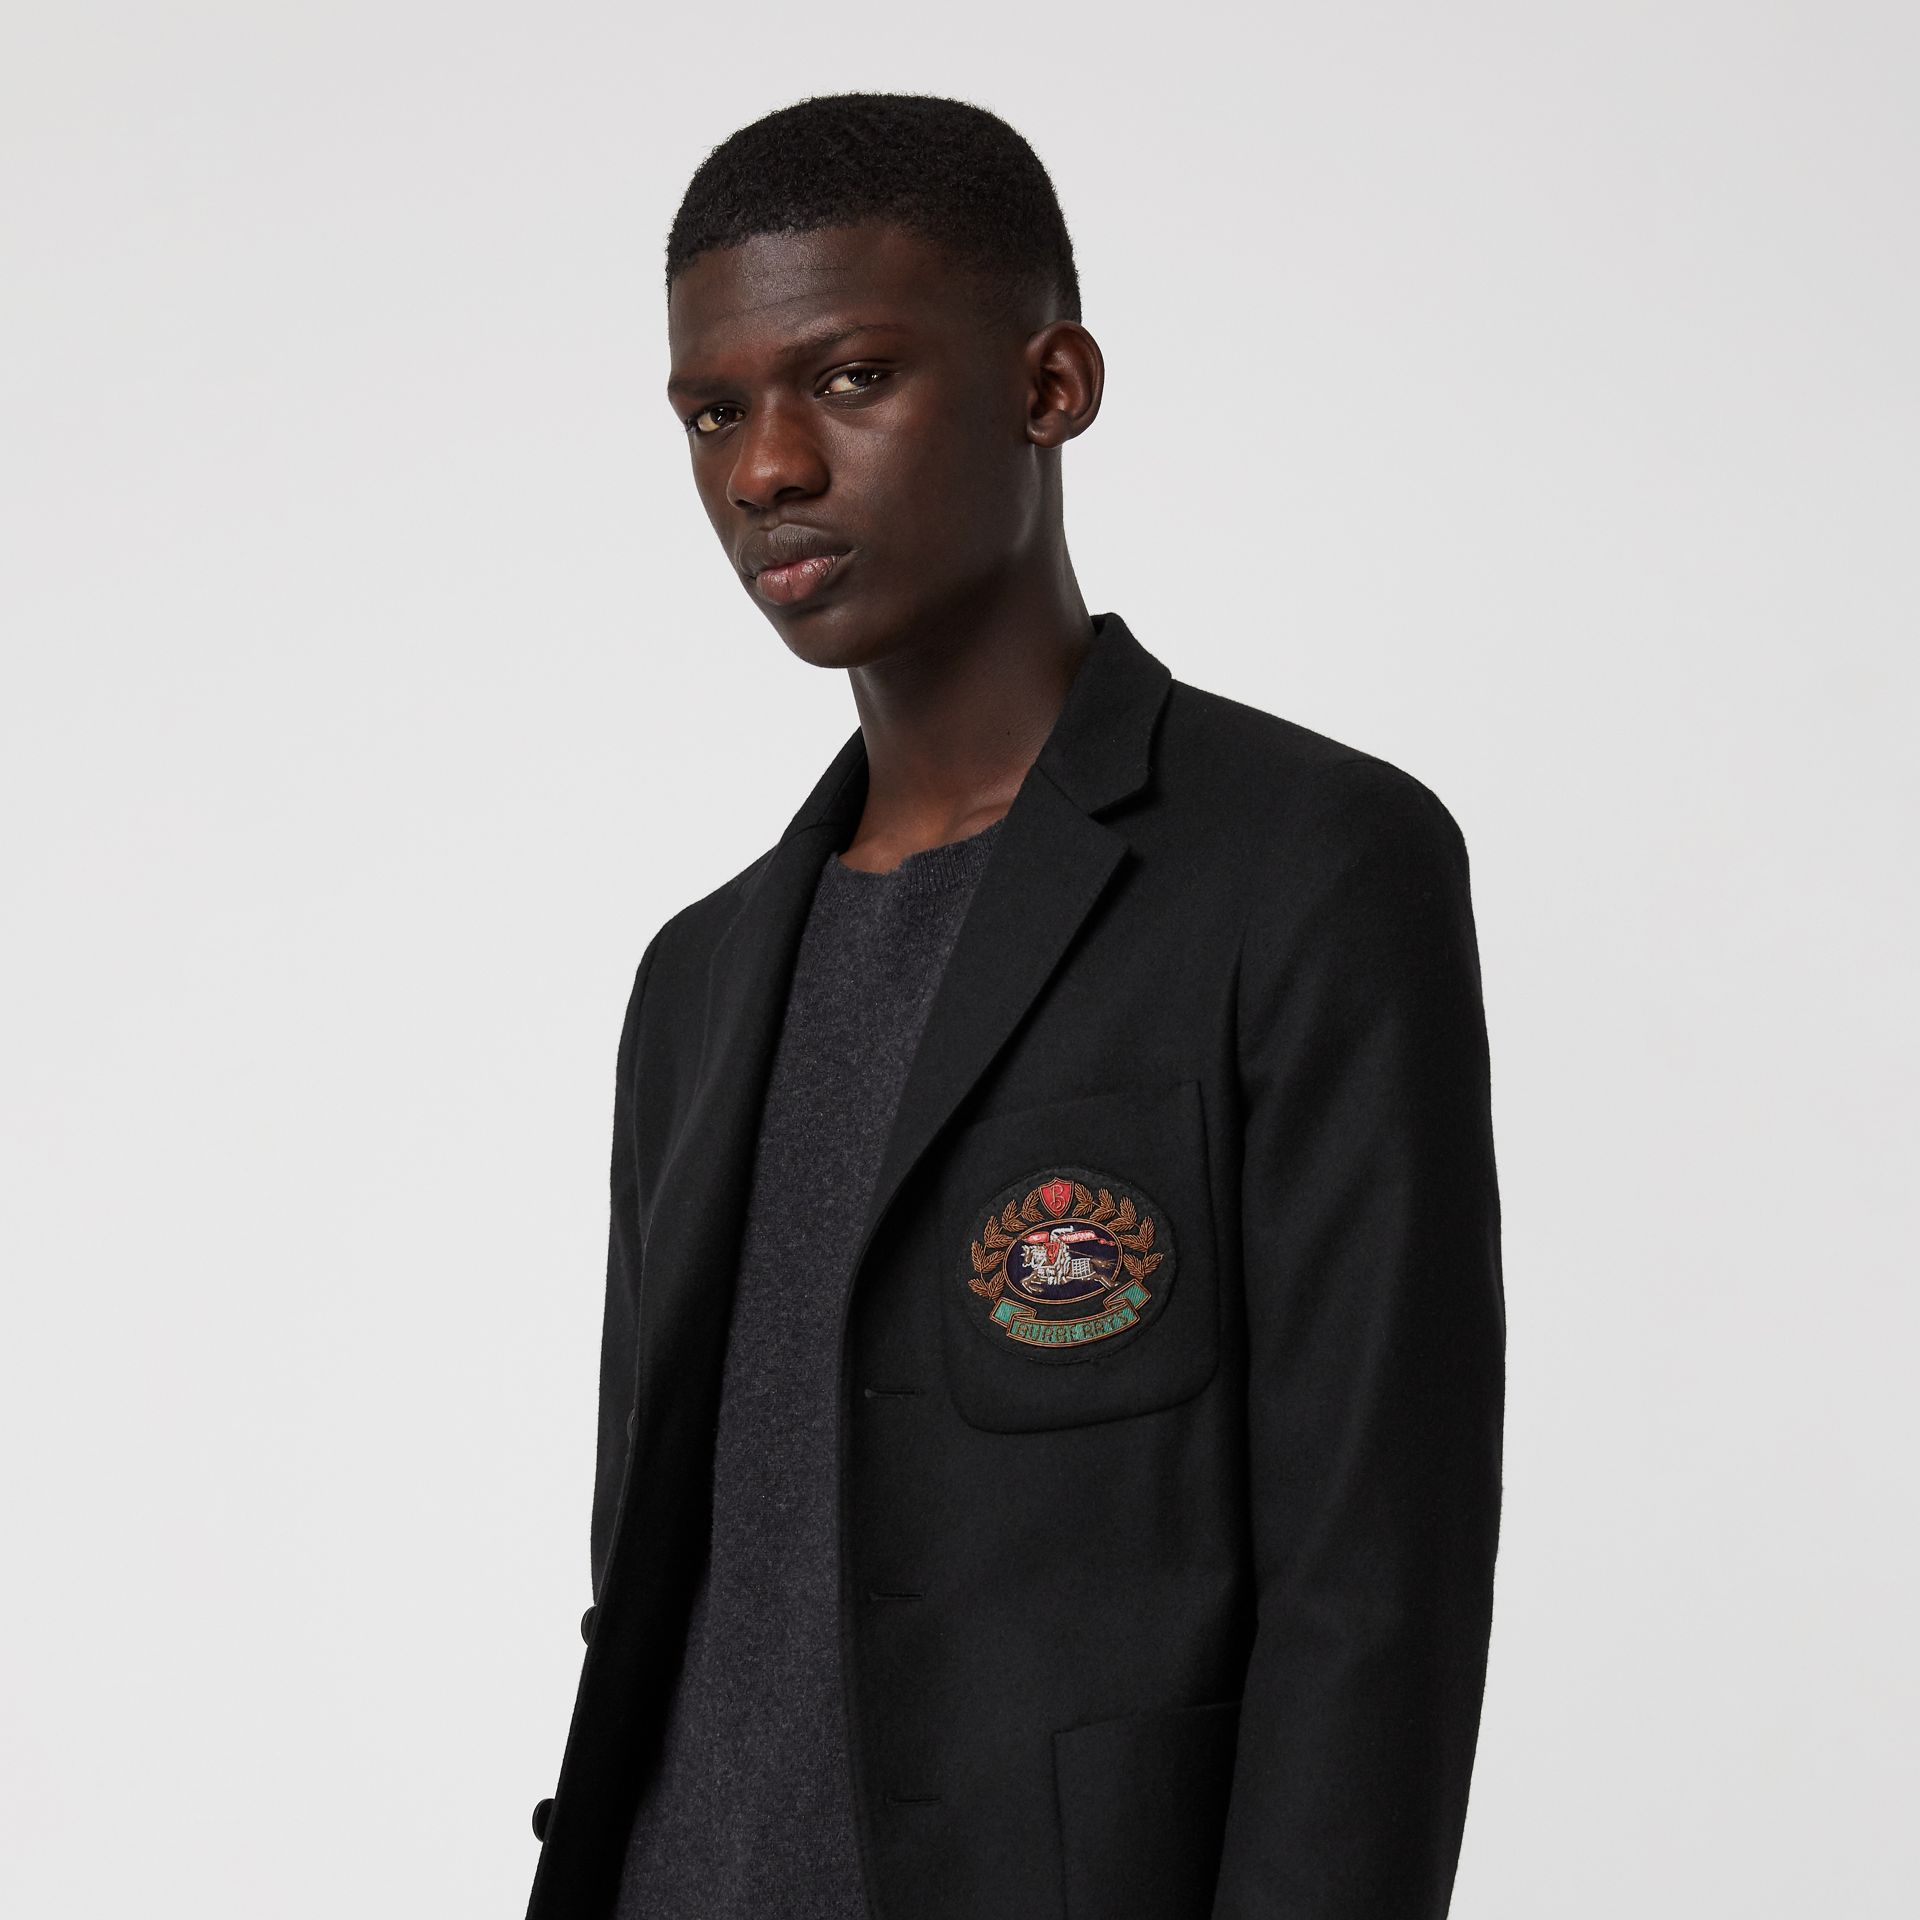 Slim Fit Embroidered Crest Wool Club Blazer in Black - Men | Burberry - gallery image 1